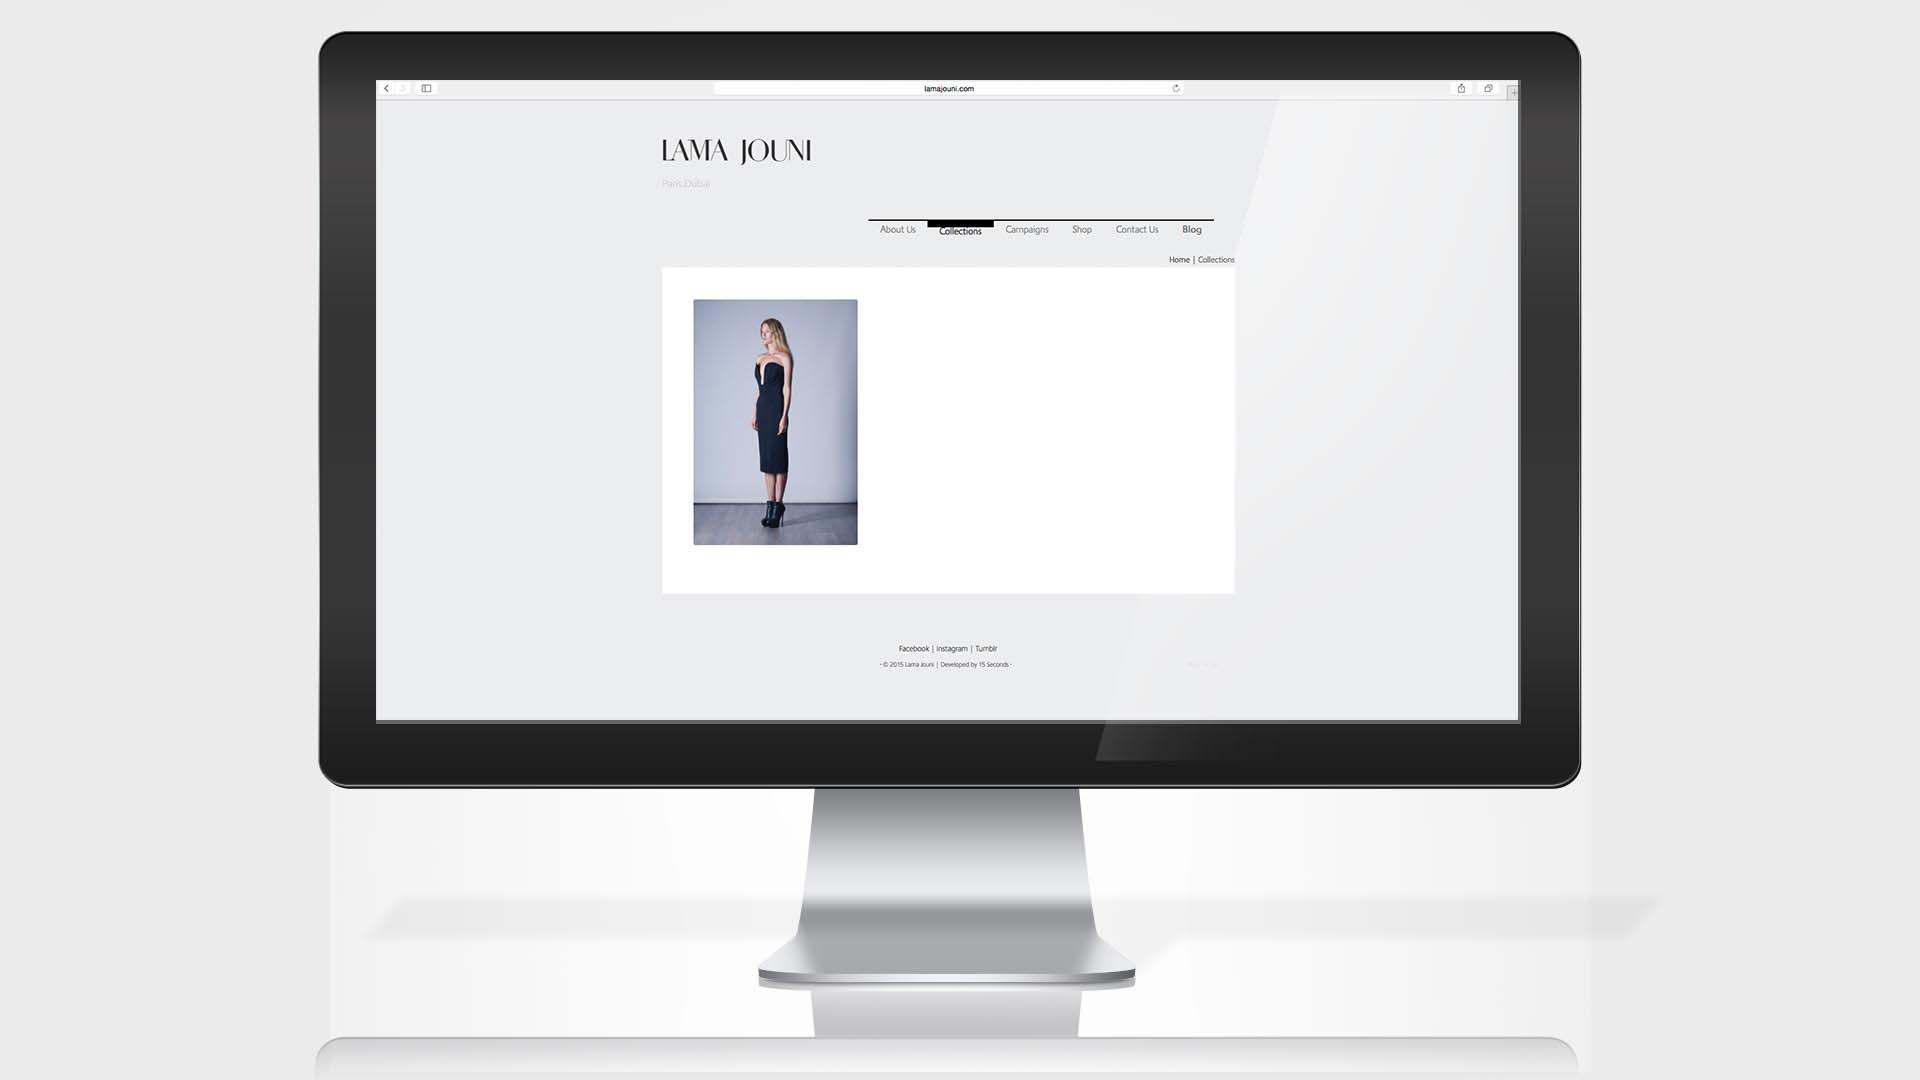 lama-jouni-website-collection-page